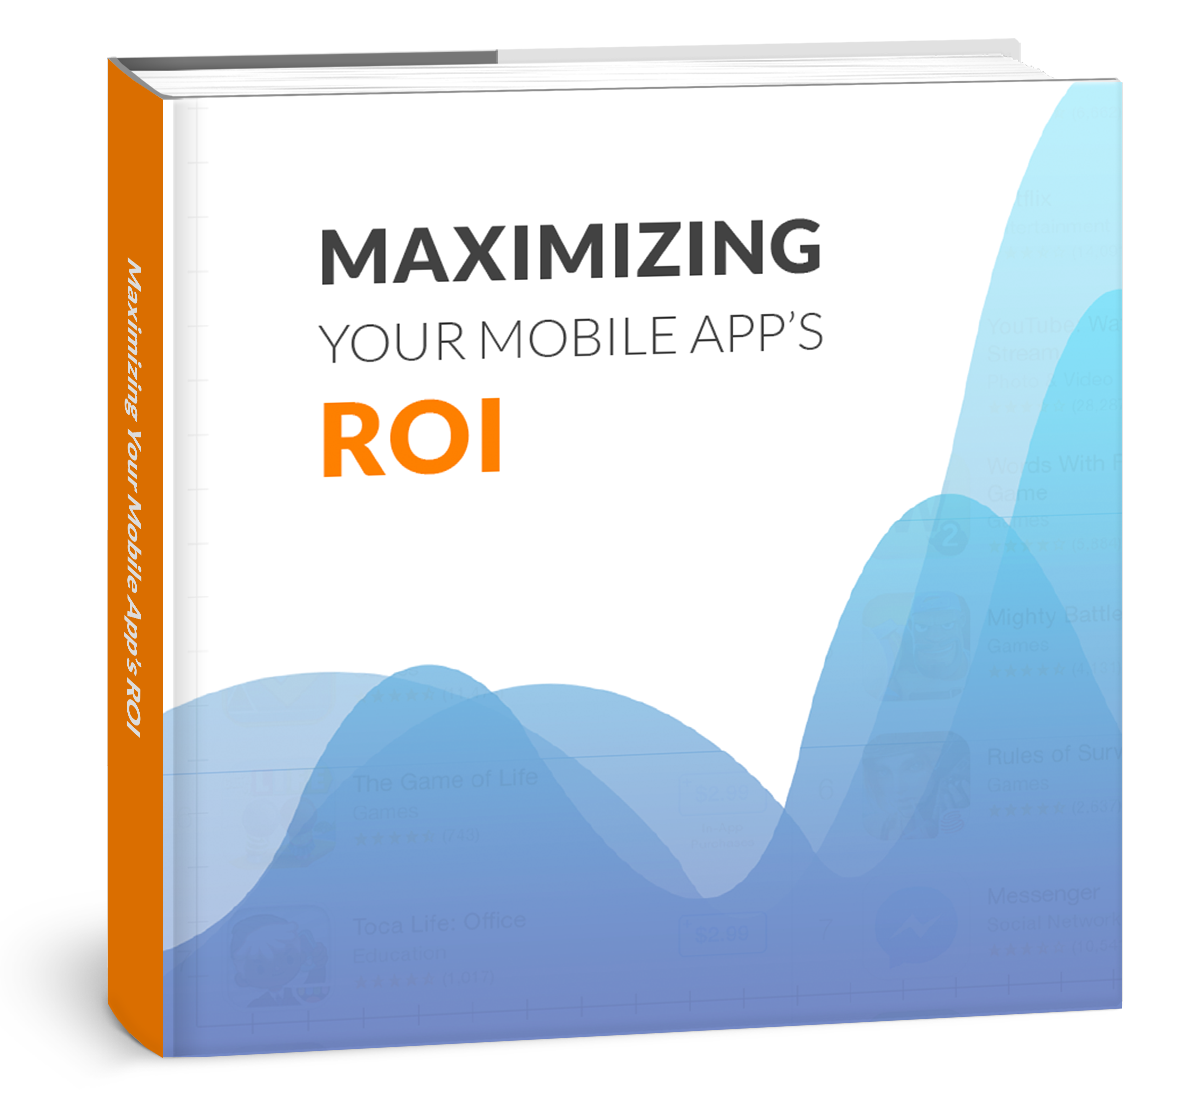 maximizing your mobile apps roi ebook